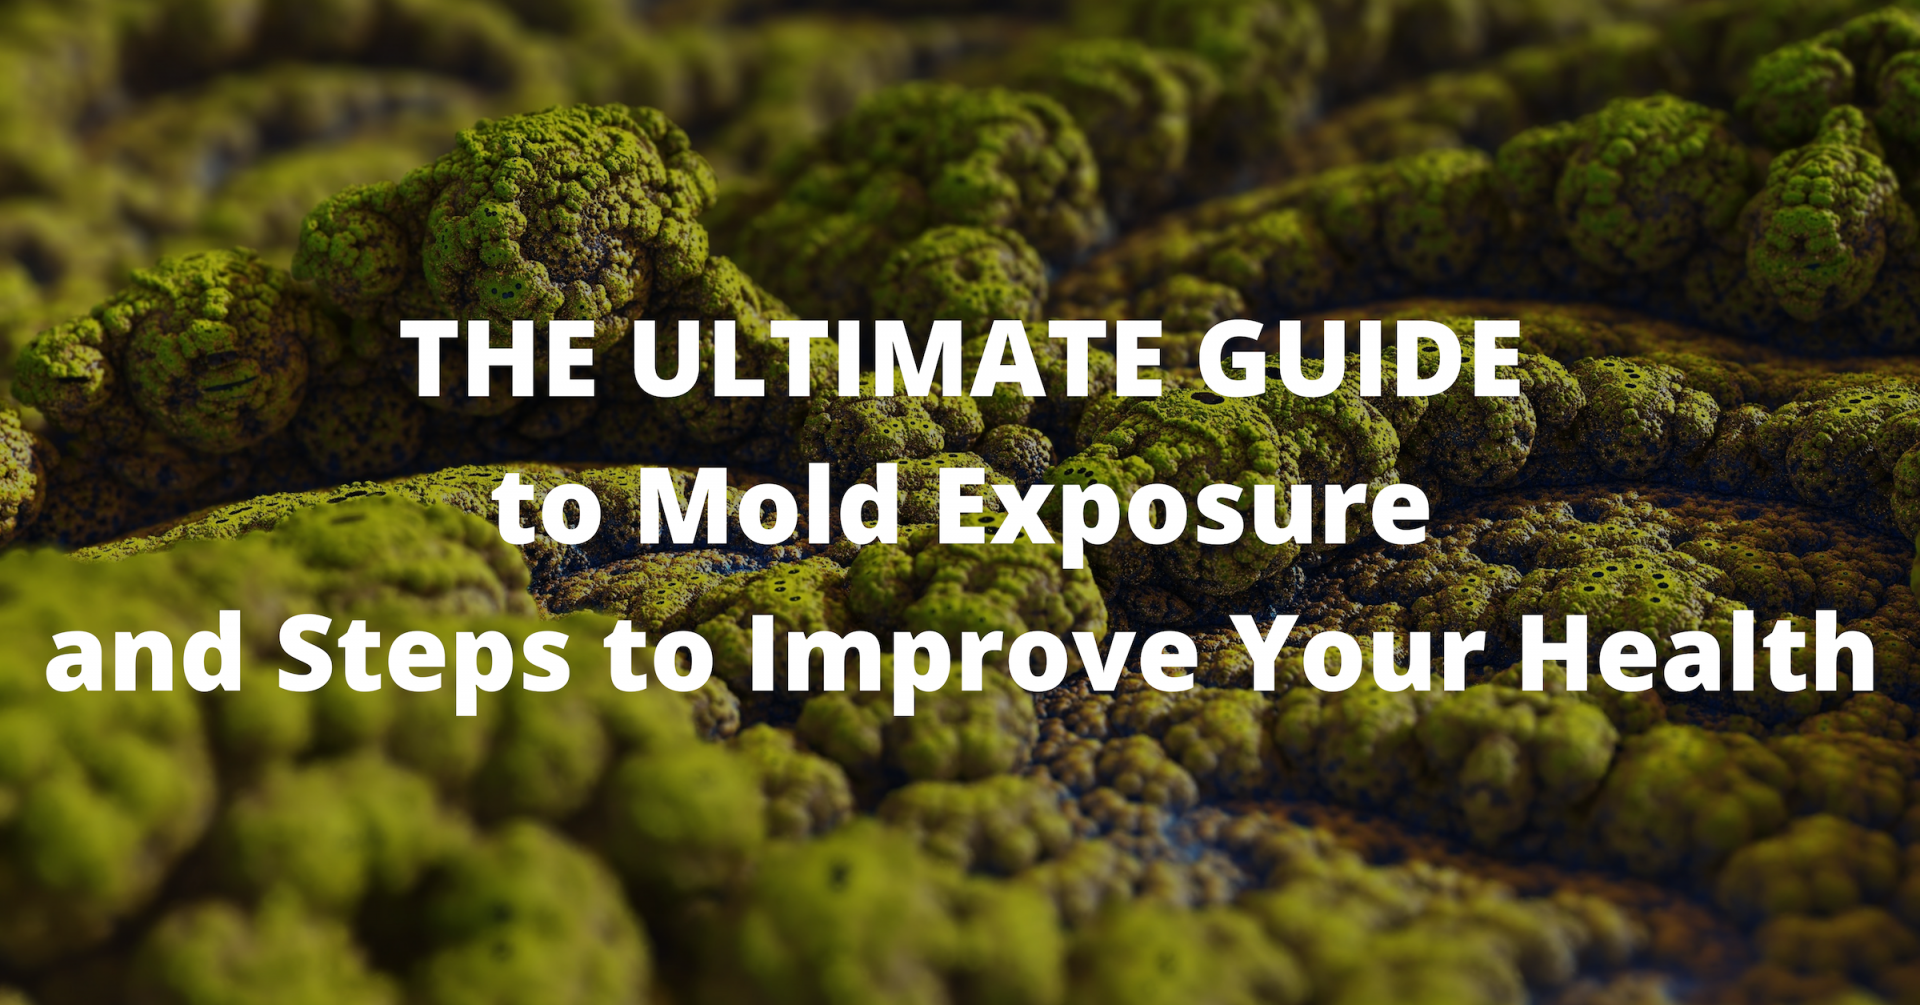 The Ultimate Guide to Mold Exposure and Steps to Improve Your Health